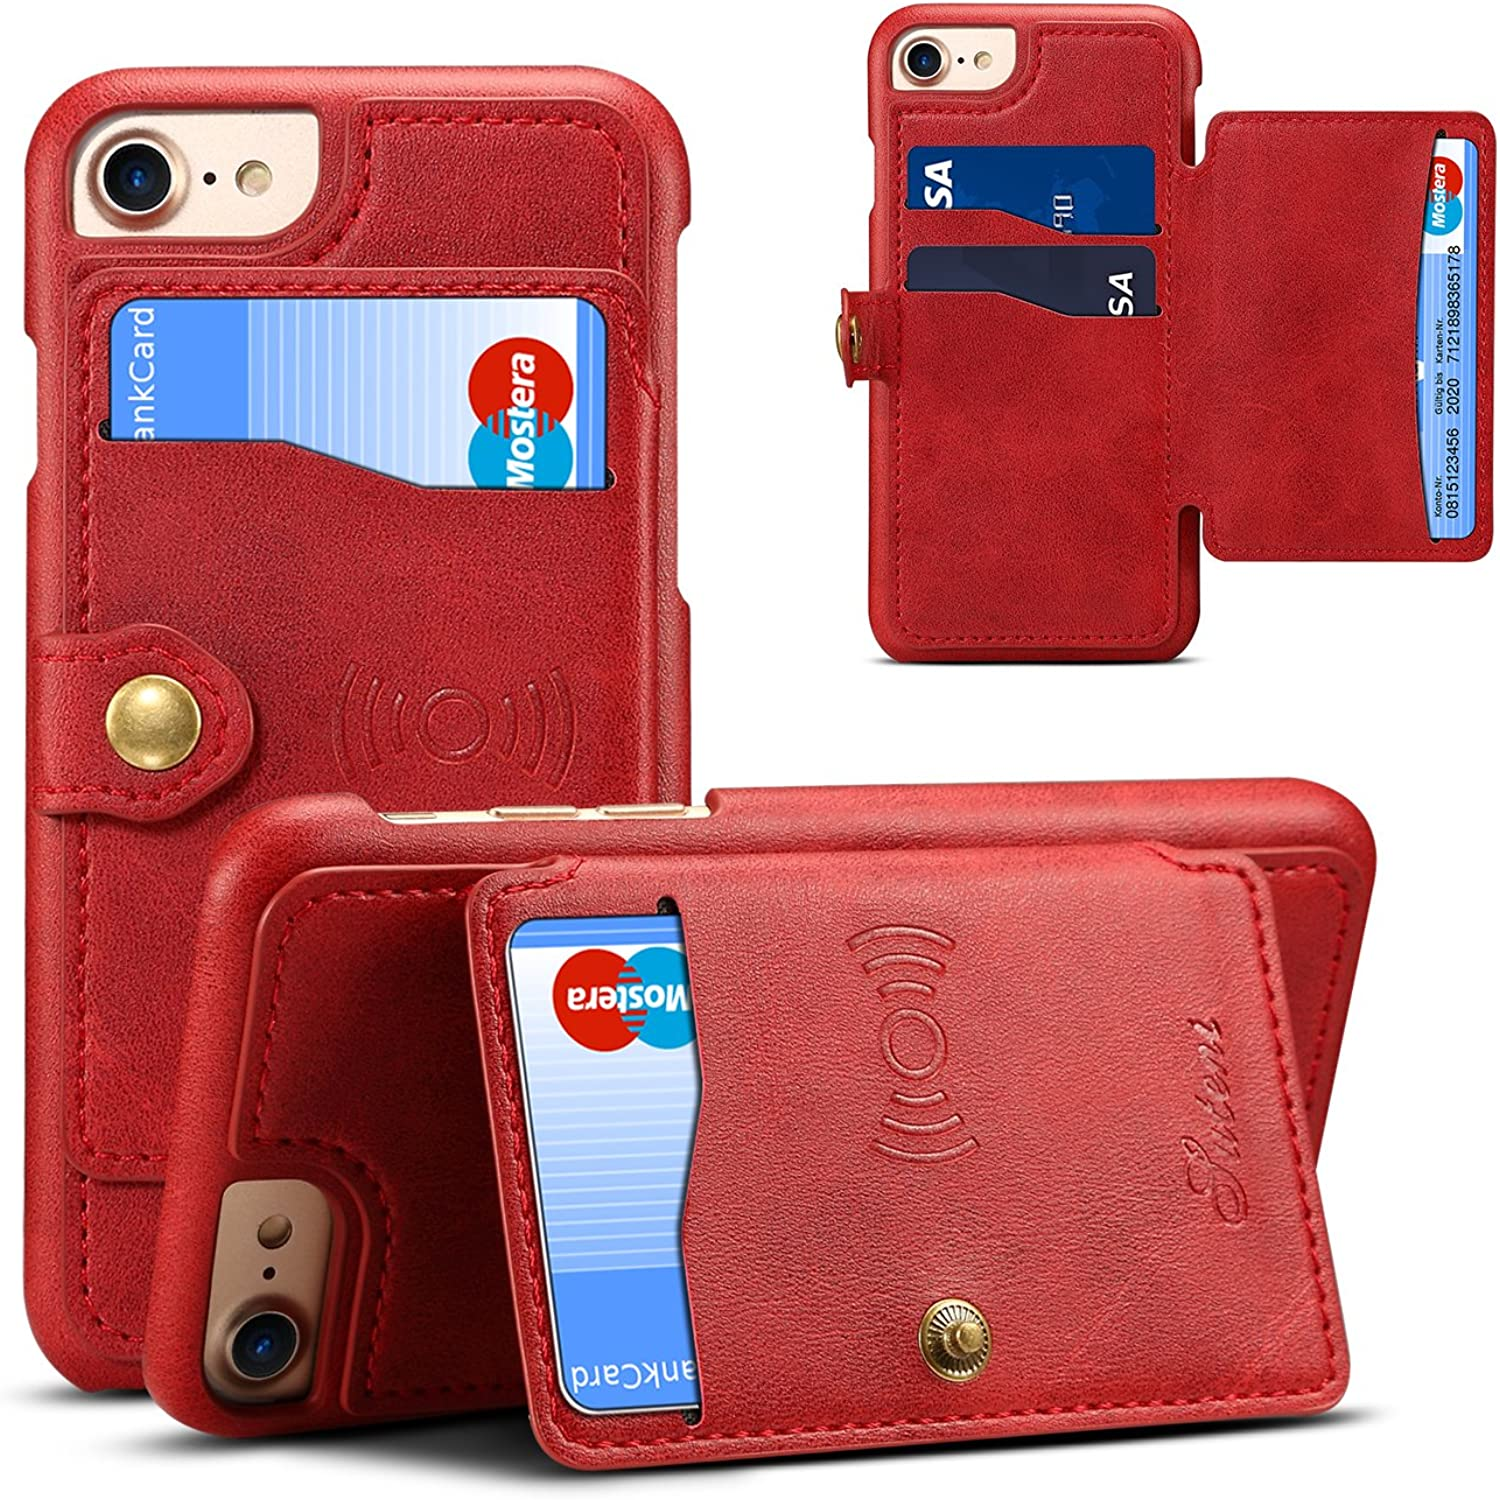 IPhone X Wallet Case,Magnet Clip, Leather ,Phone Wallet and iPhone Card Holder Card Wallet for Cell Phone